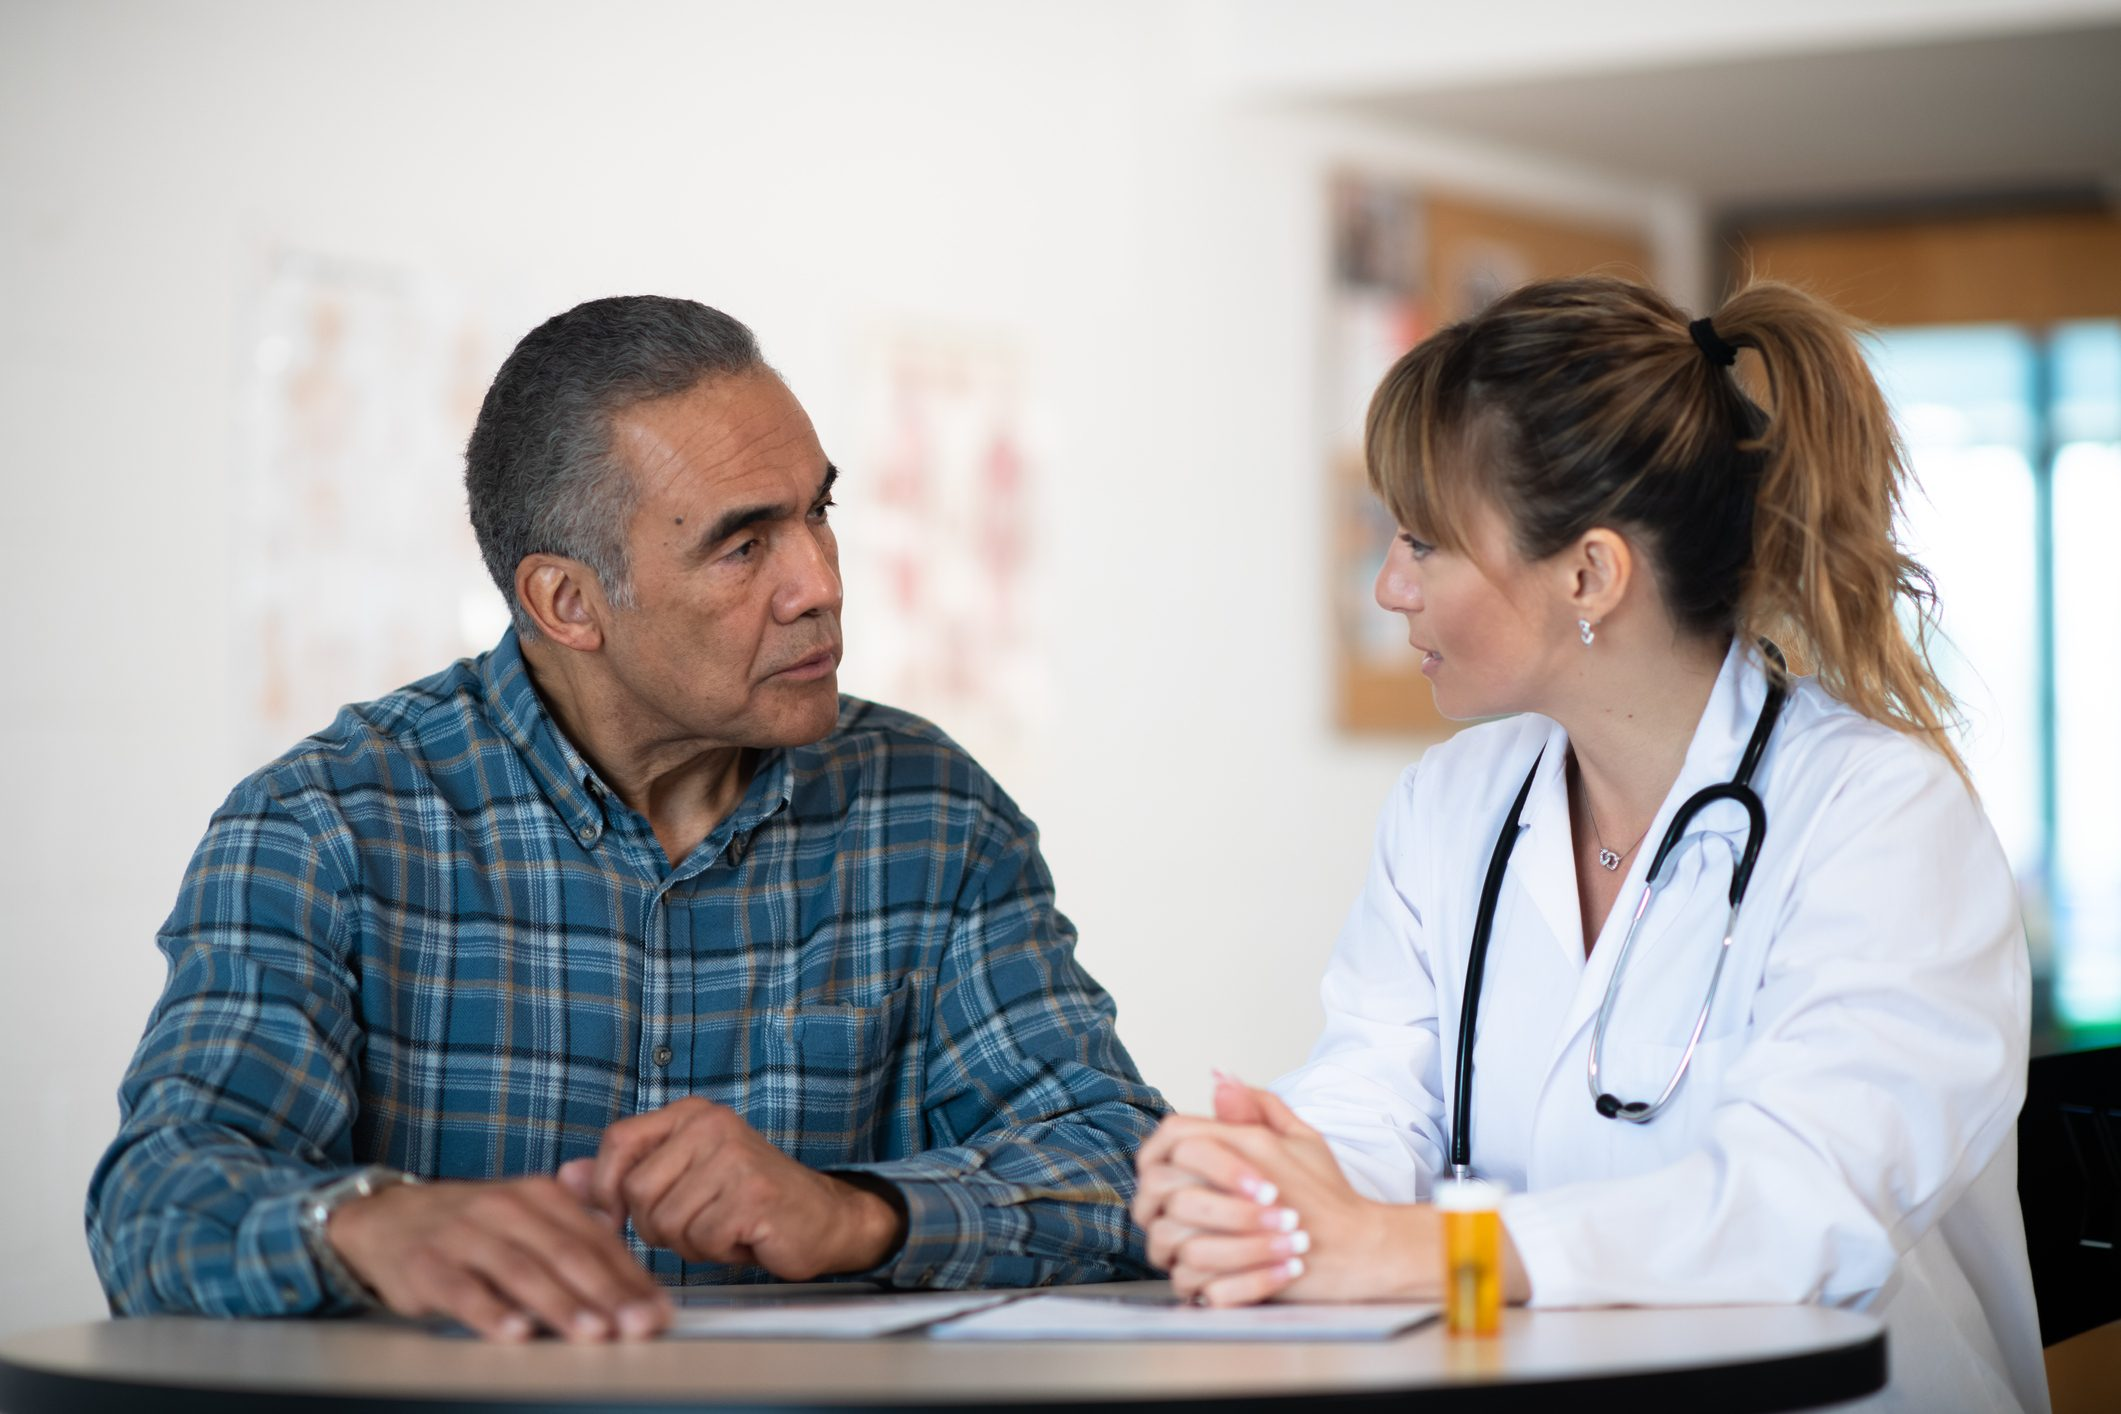 female doctor talking with male patient